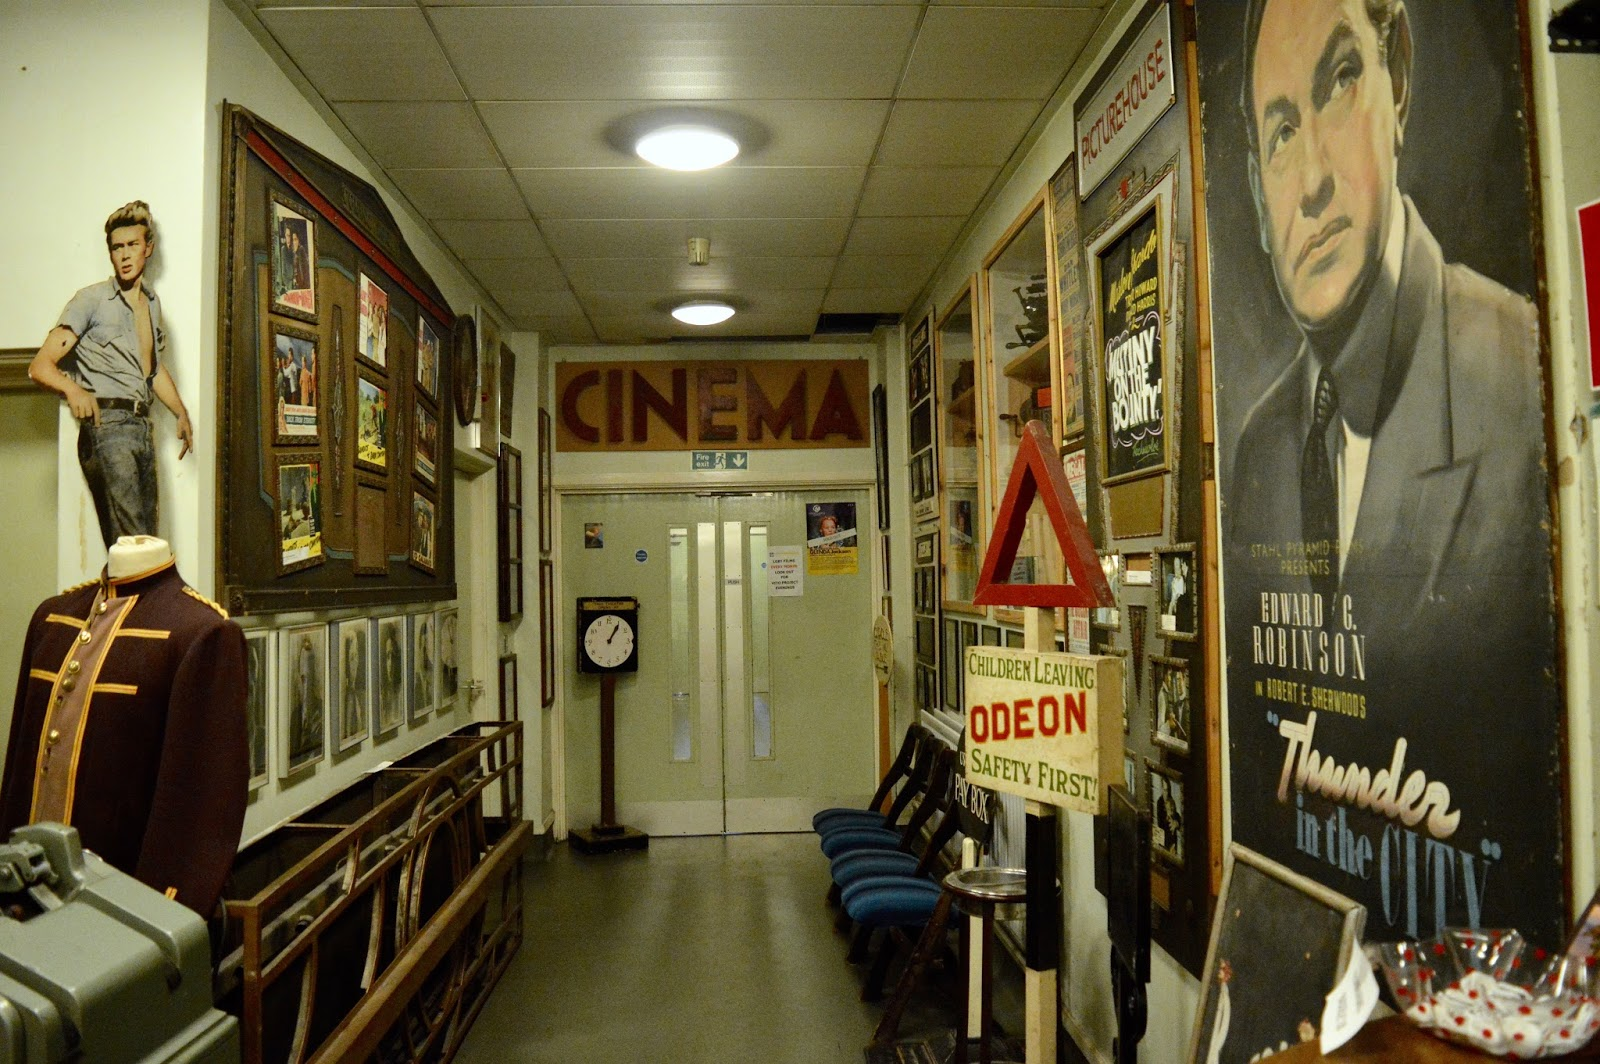 Inside the Cinema Museum